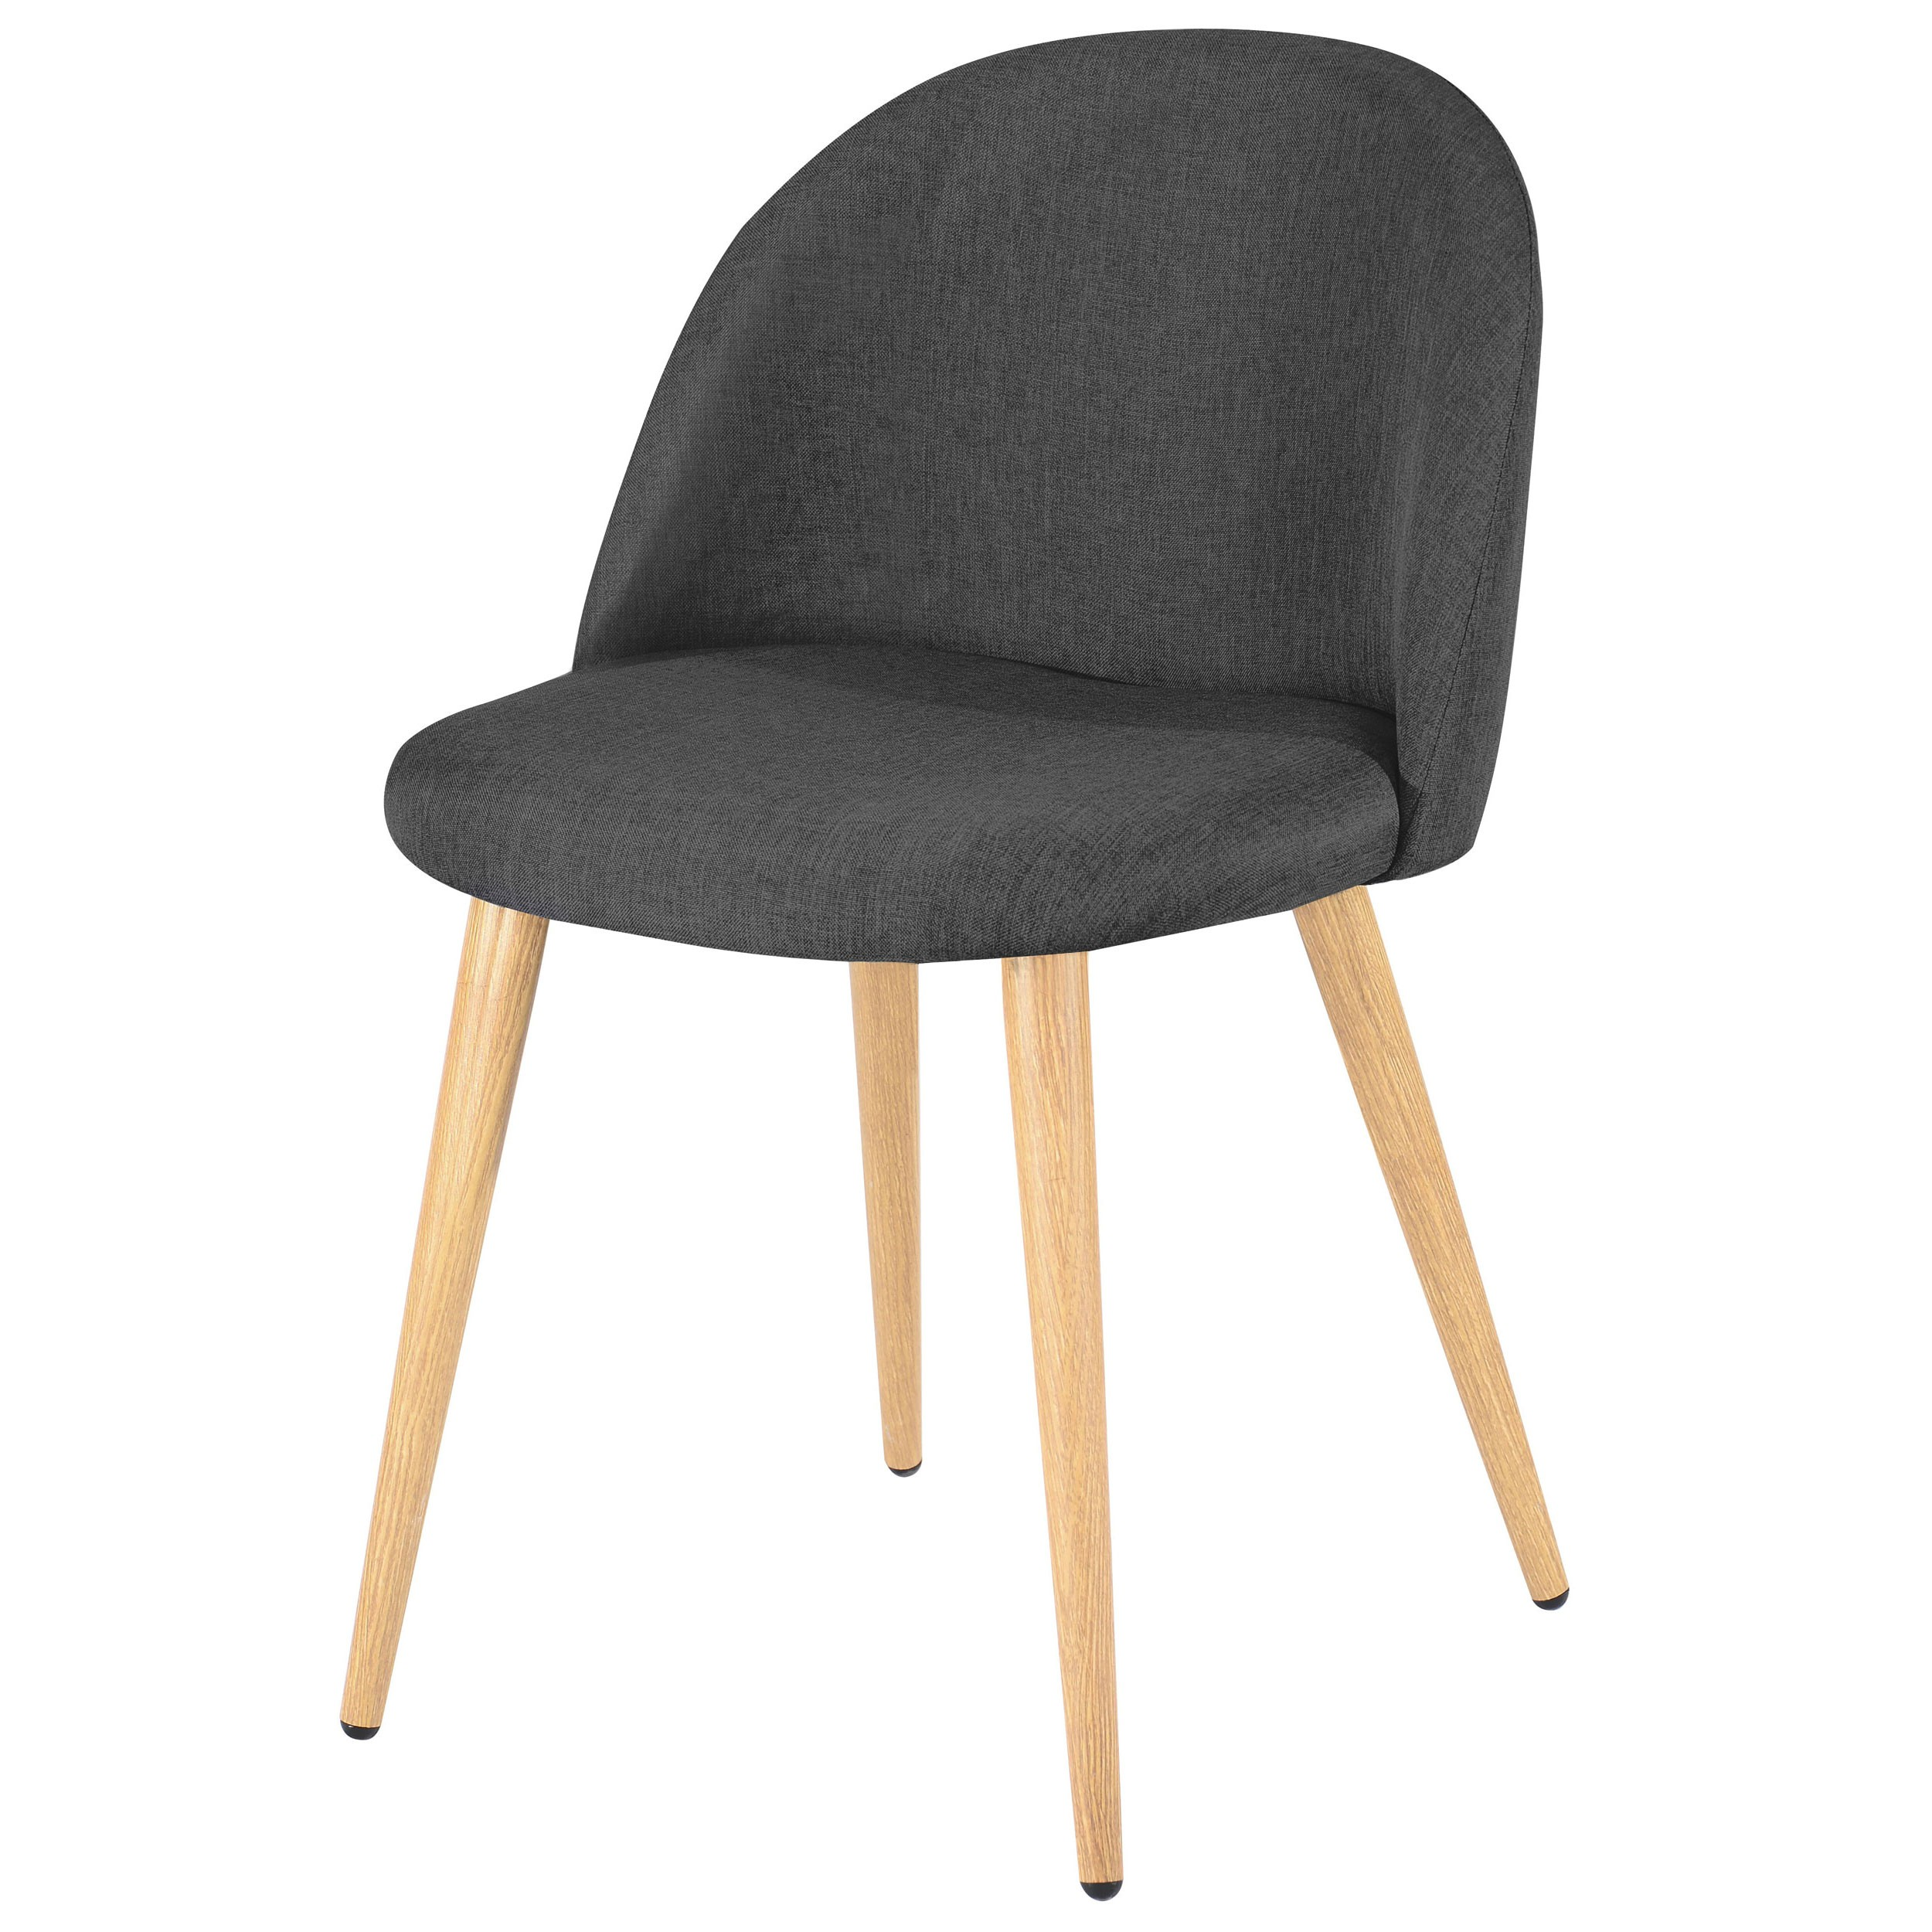 achat chaise gris fonce scandinave